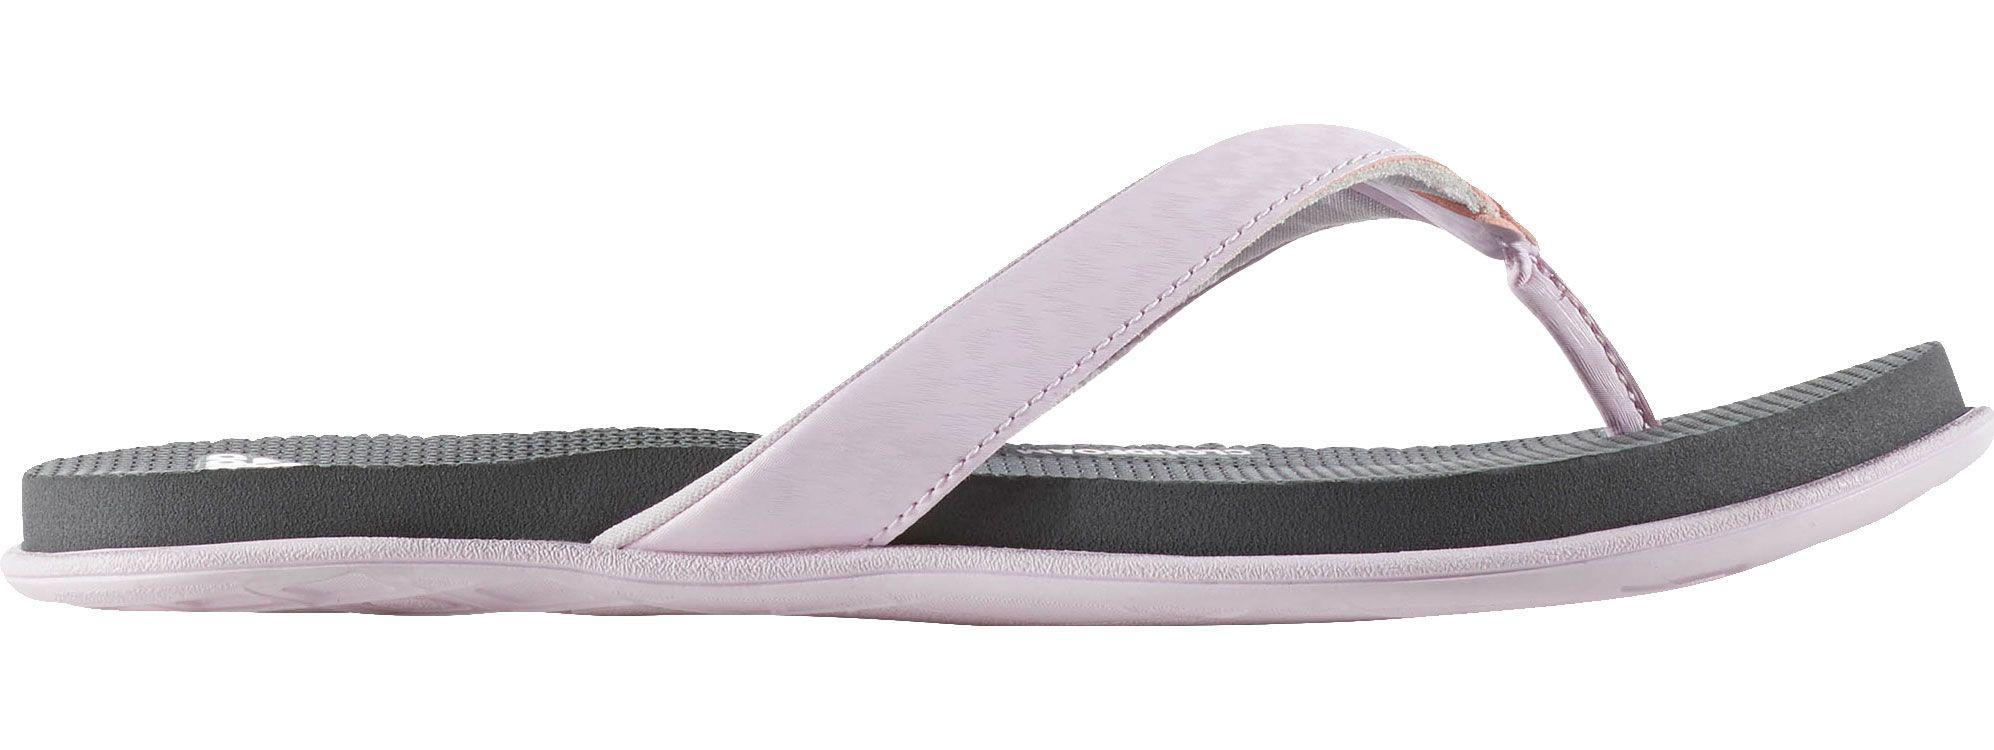 e9f9c0ec8 Lyst - adidas Cloudfoam One Thong Sandals in Gray